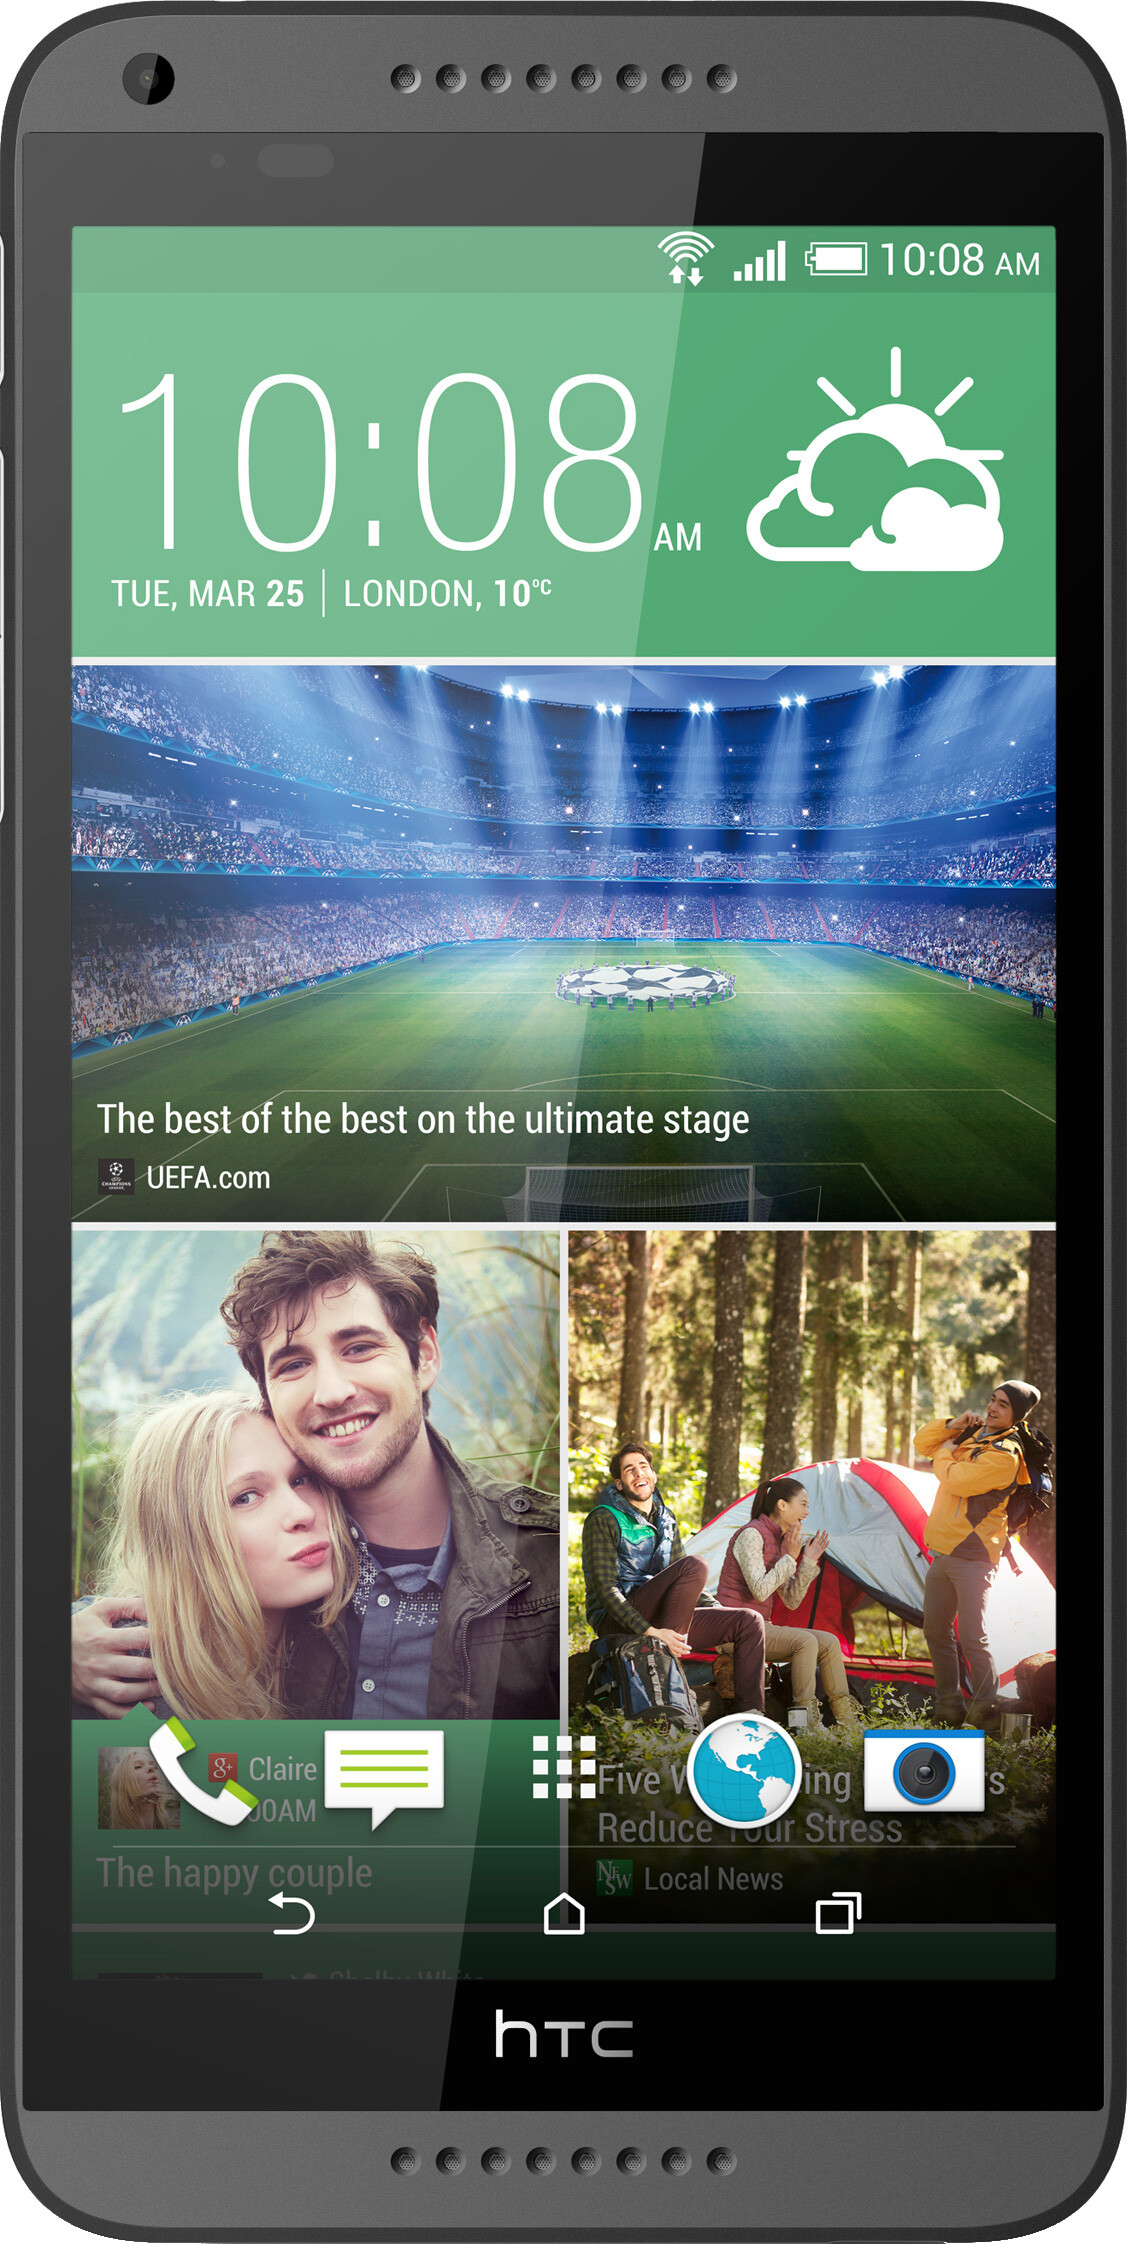 HTC Desire 816 Size - Real life visualization and comparison